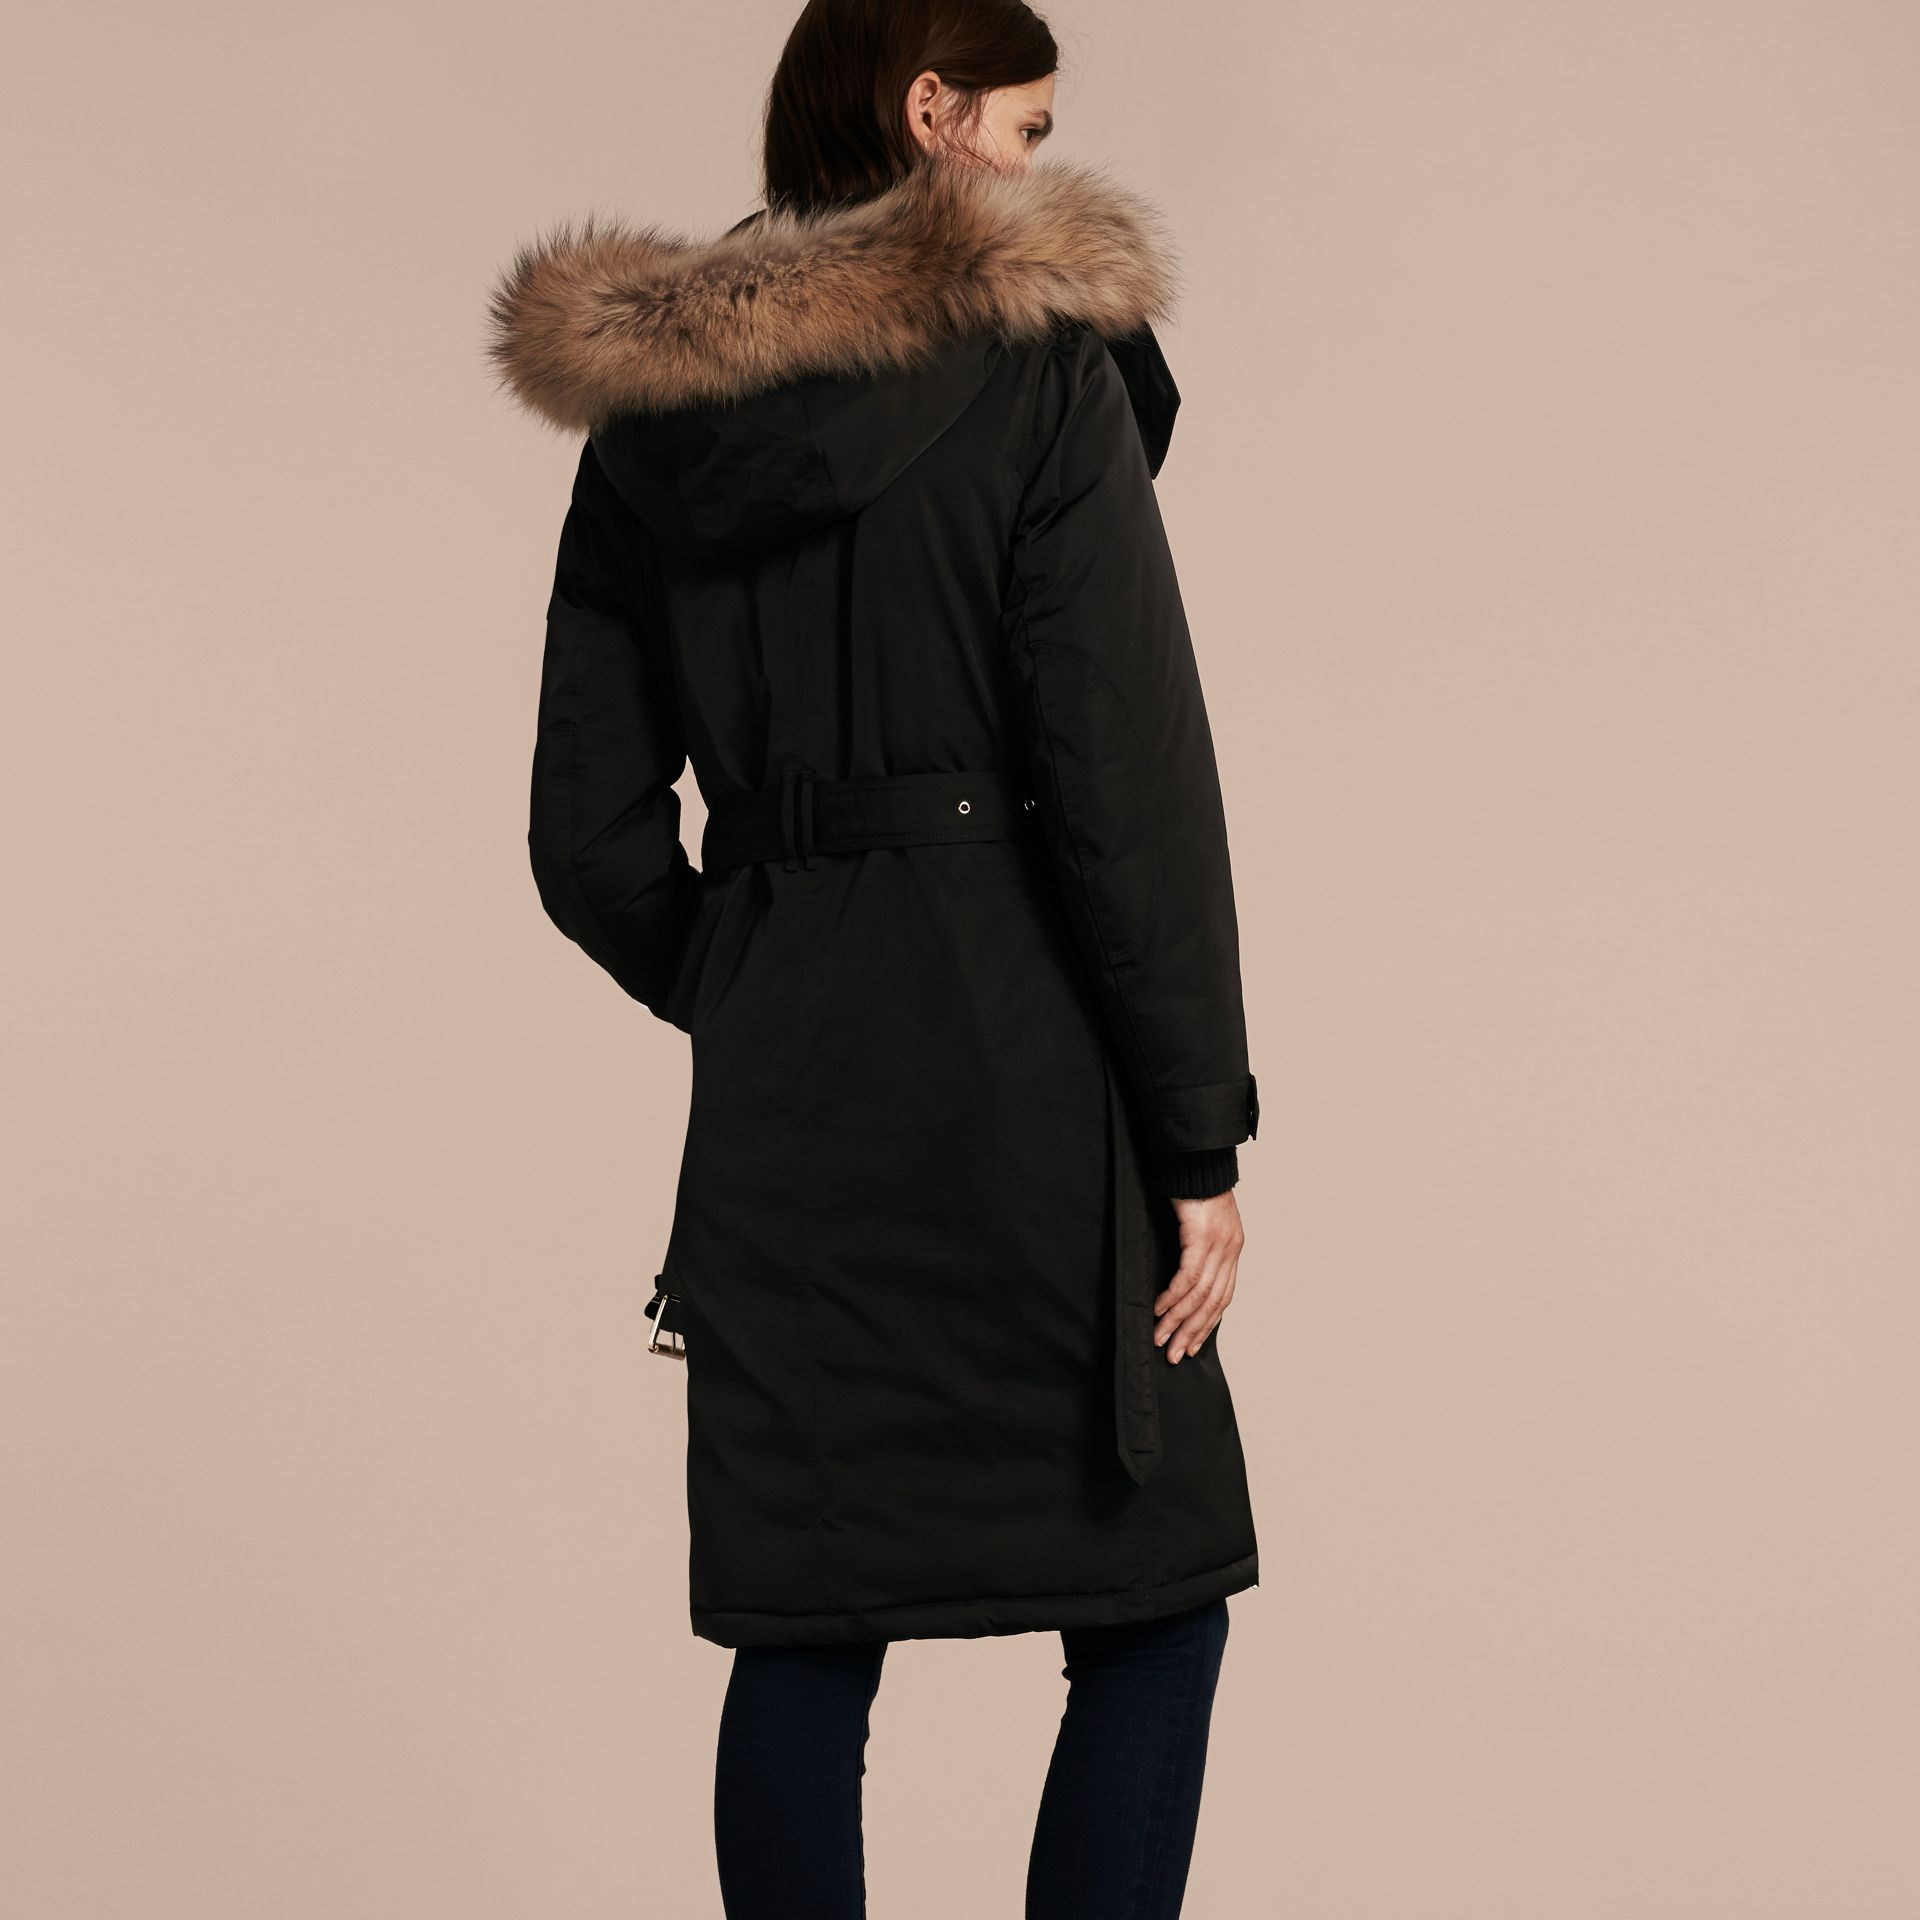 Black Down-filled Parka Coat with Detachable Fur Trim Black - gallery image 3